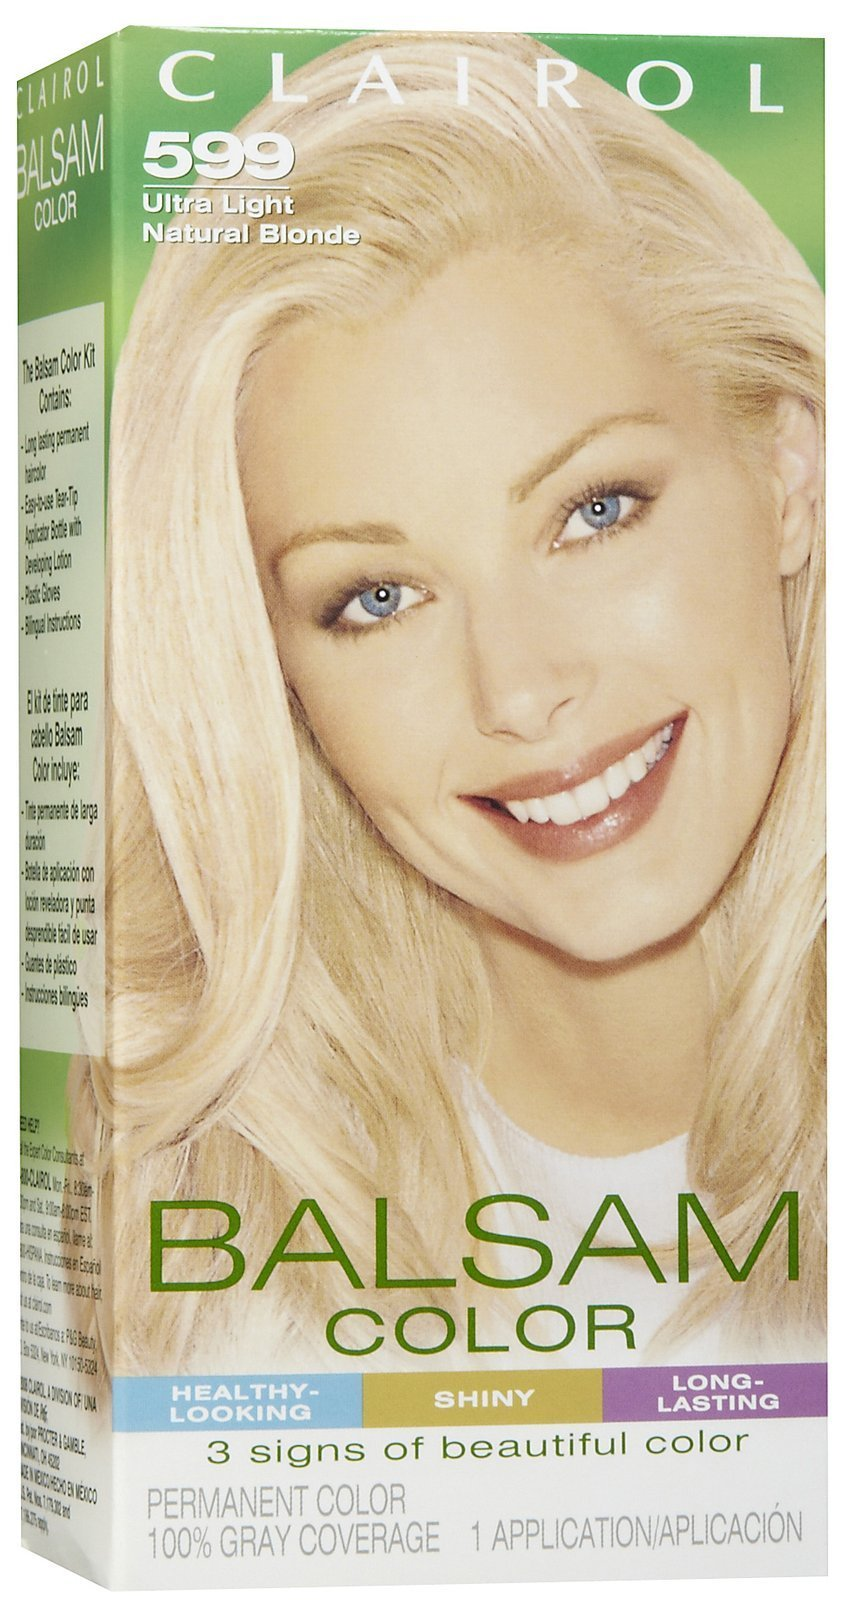 Clairol Balsam Hair Color, Ultra Light Natural Blonde (599) - 1 ea Pack of 1